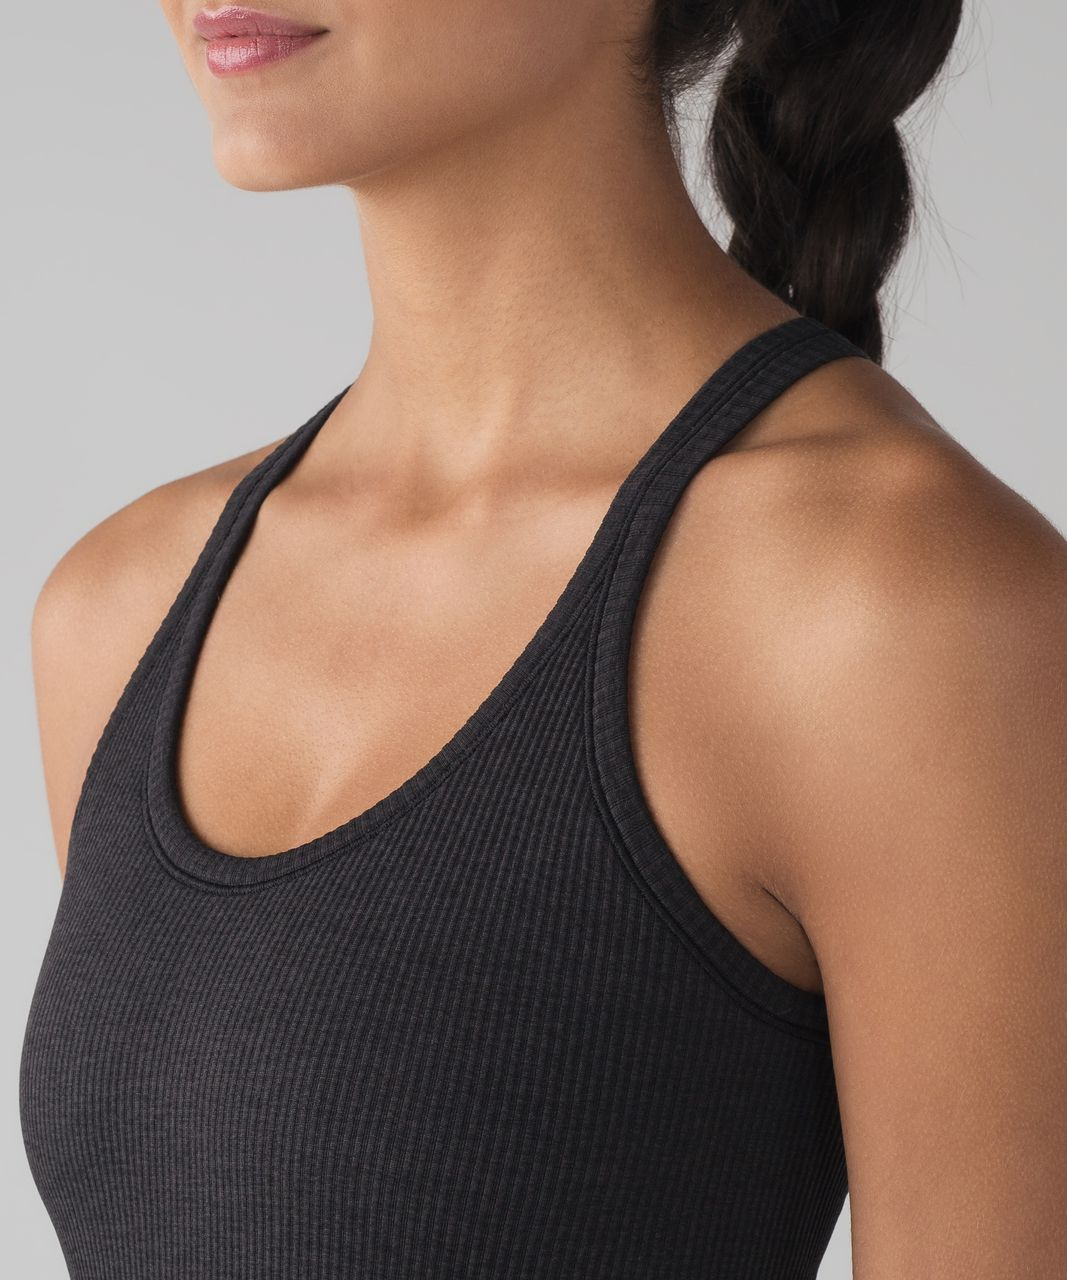 Lululemon Ebb To Street Tank (Light Support For B/C Cup) - Black